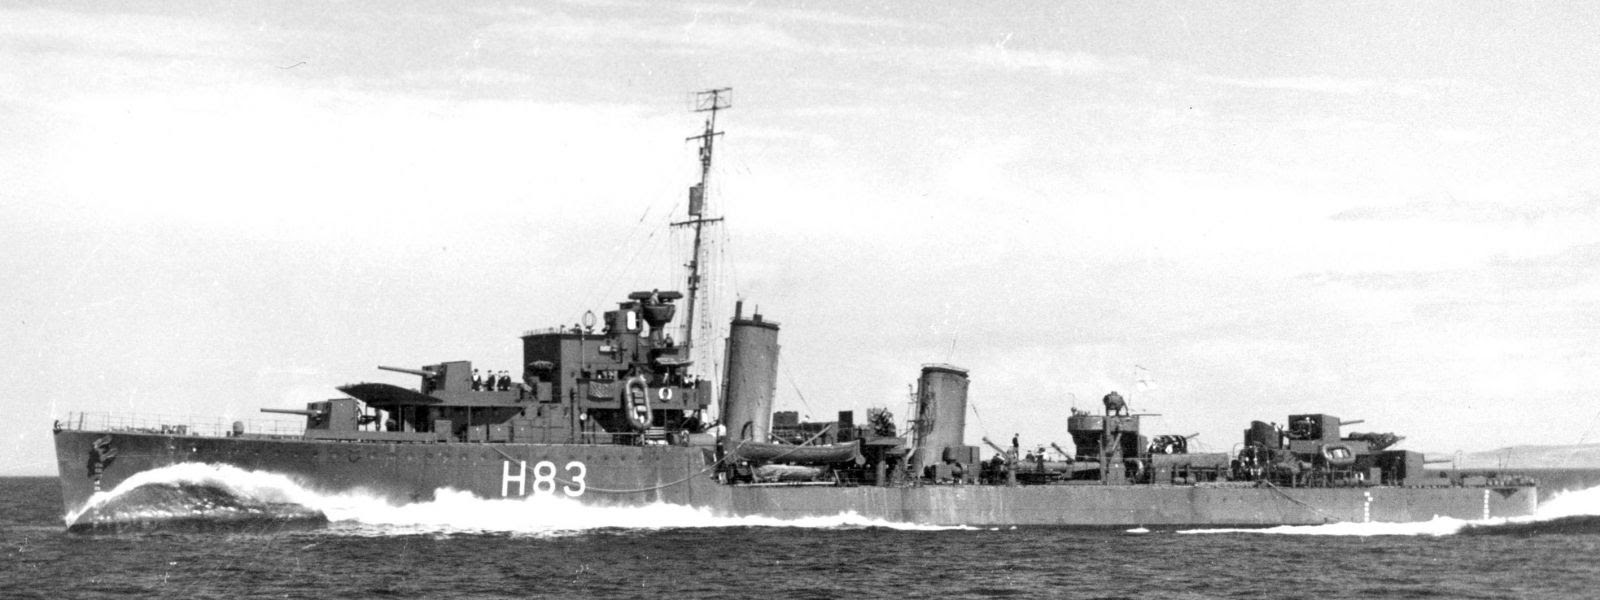 Sister ships take part in evacuations